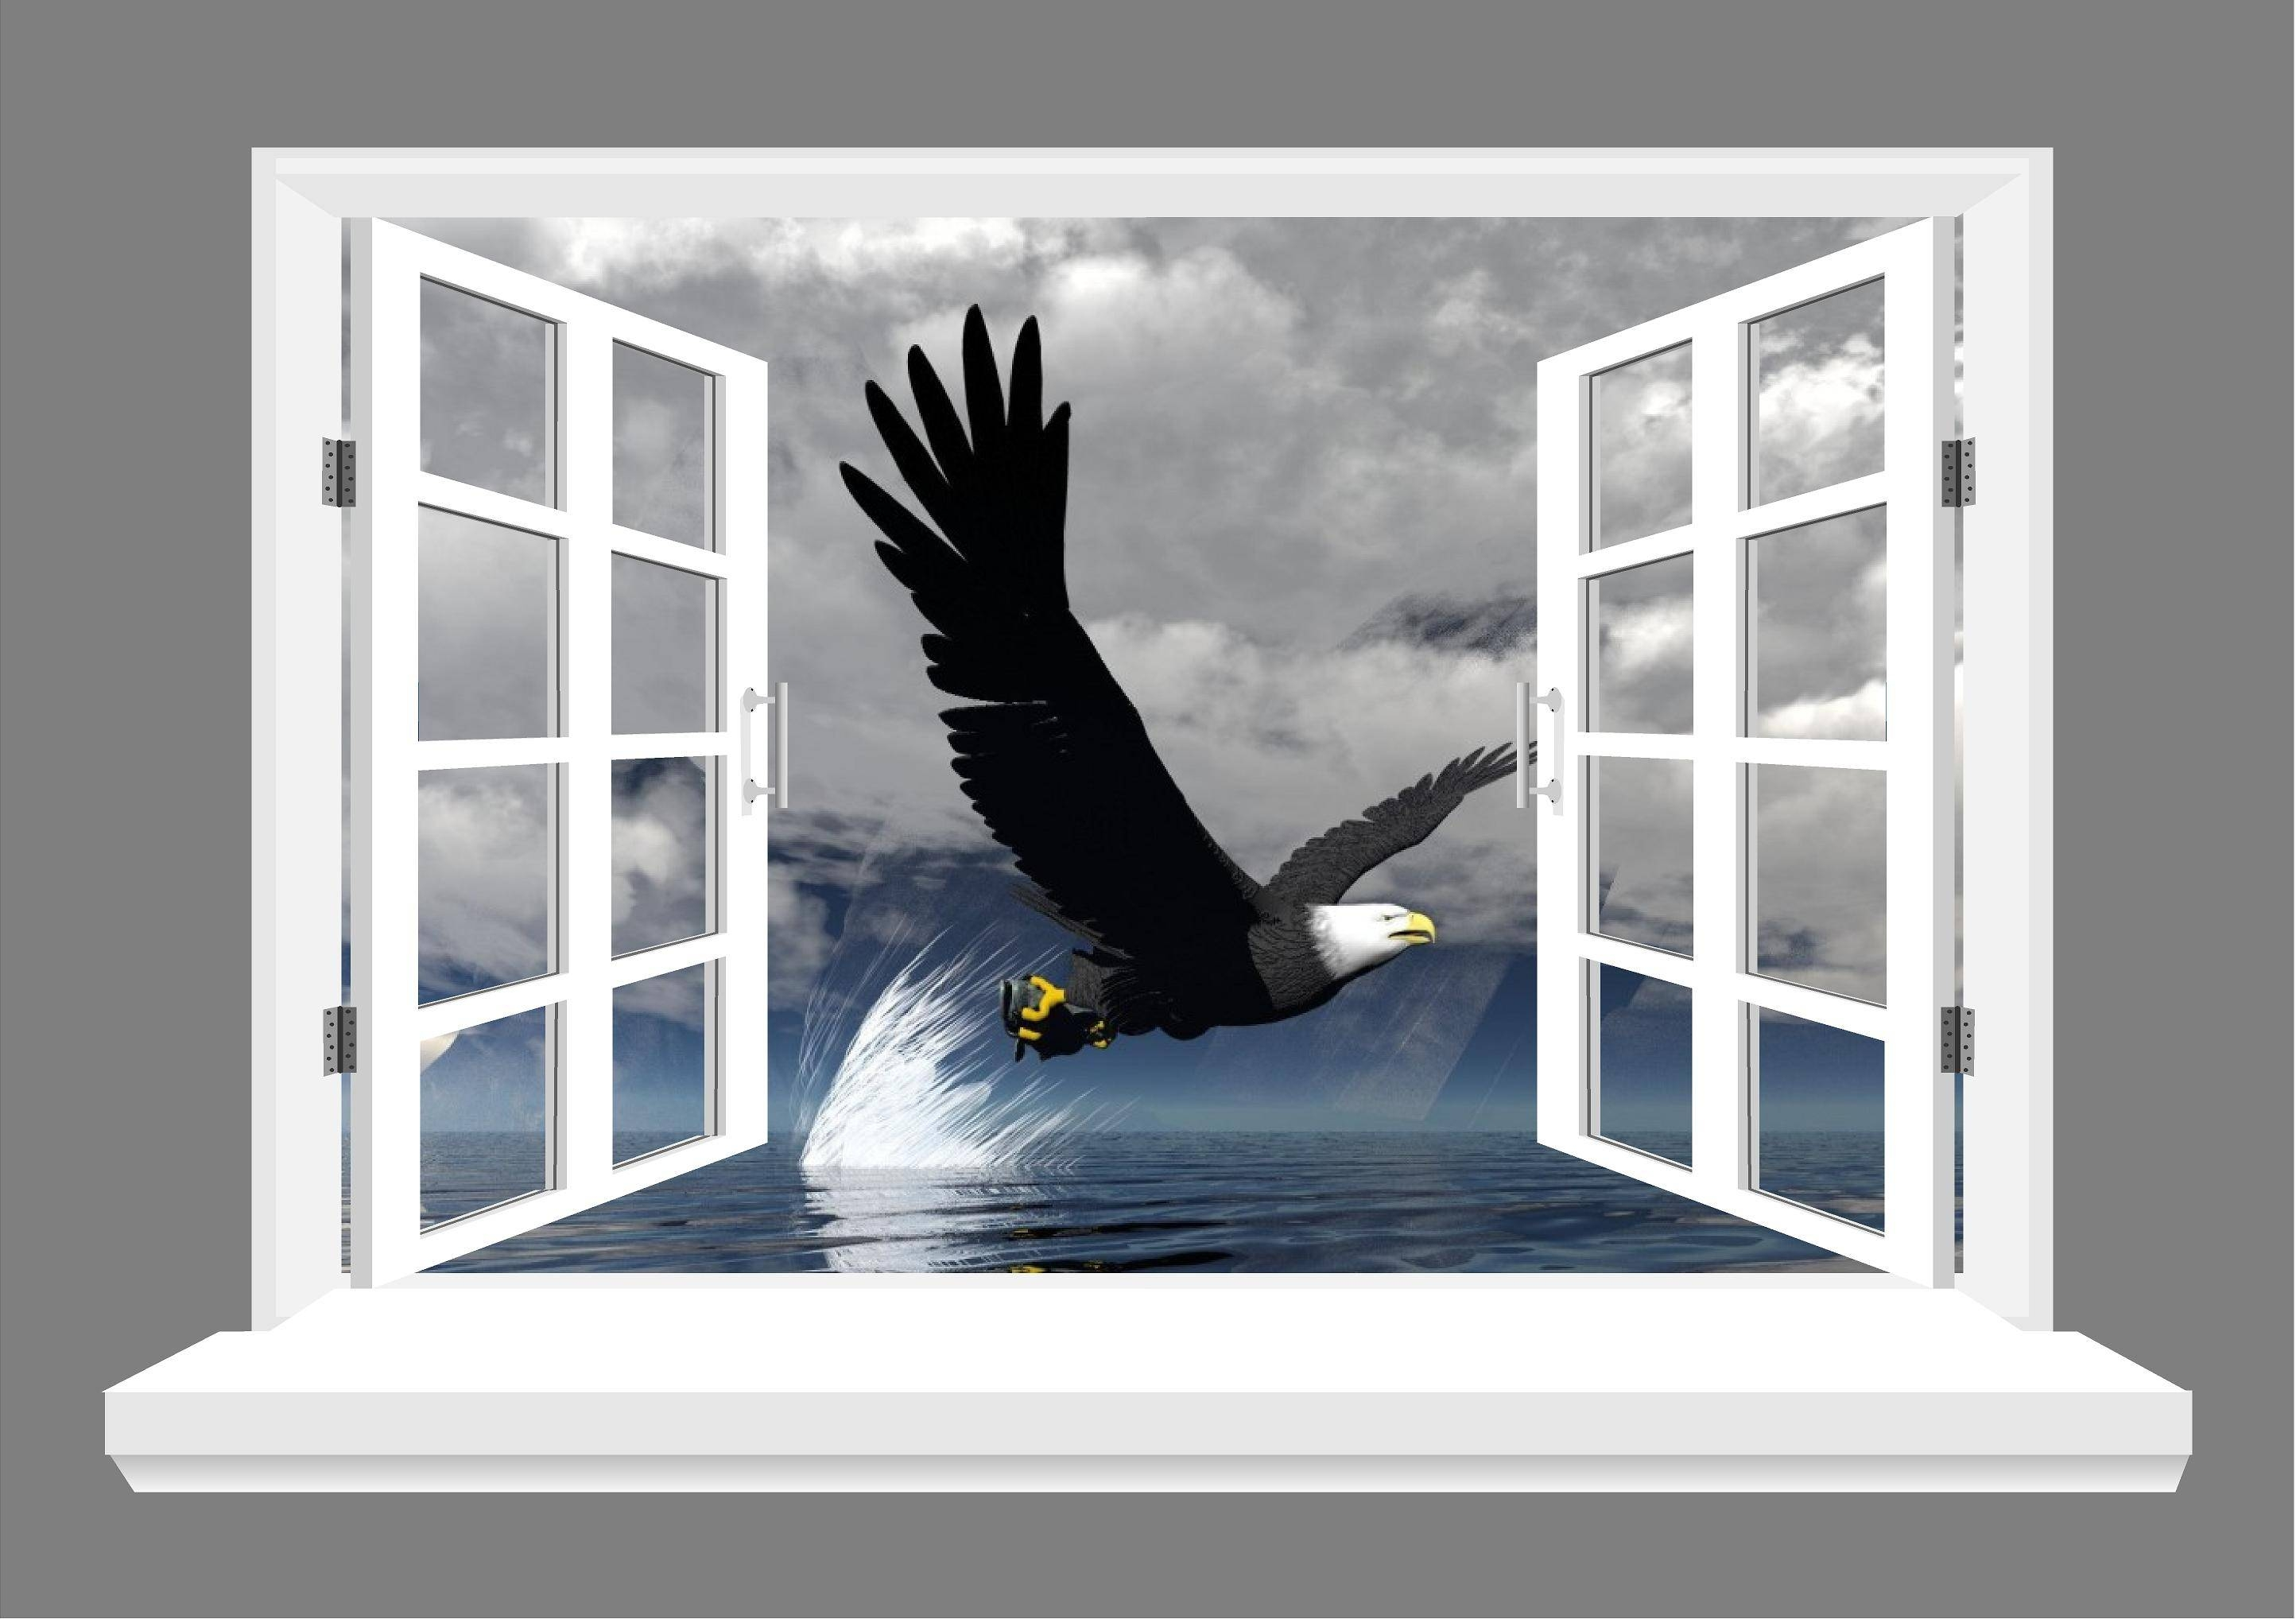 Wall Art Design Ideas: Eagly Flying 3d Wall Art Bird Windows For Best And Newest 3d Wall Art Window (View 4 of 20)